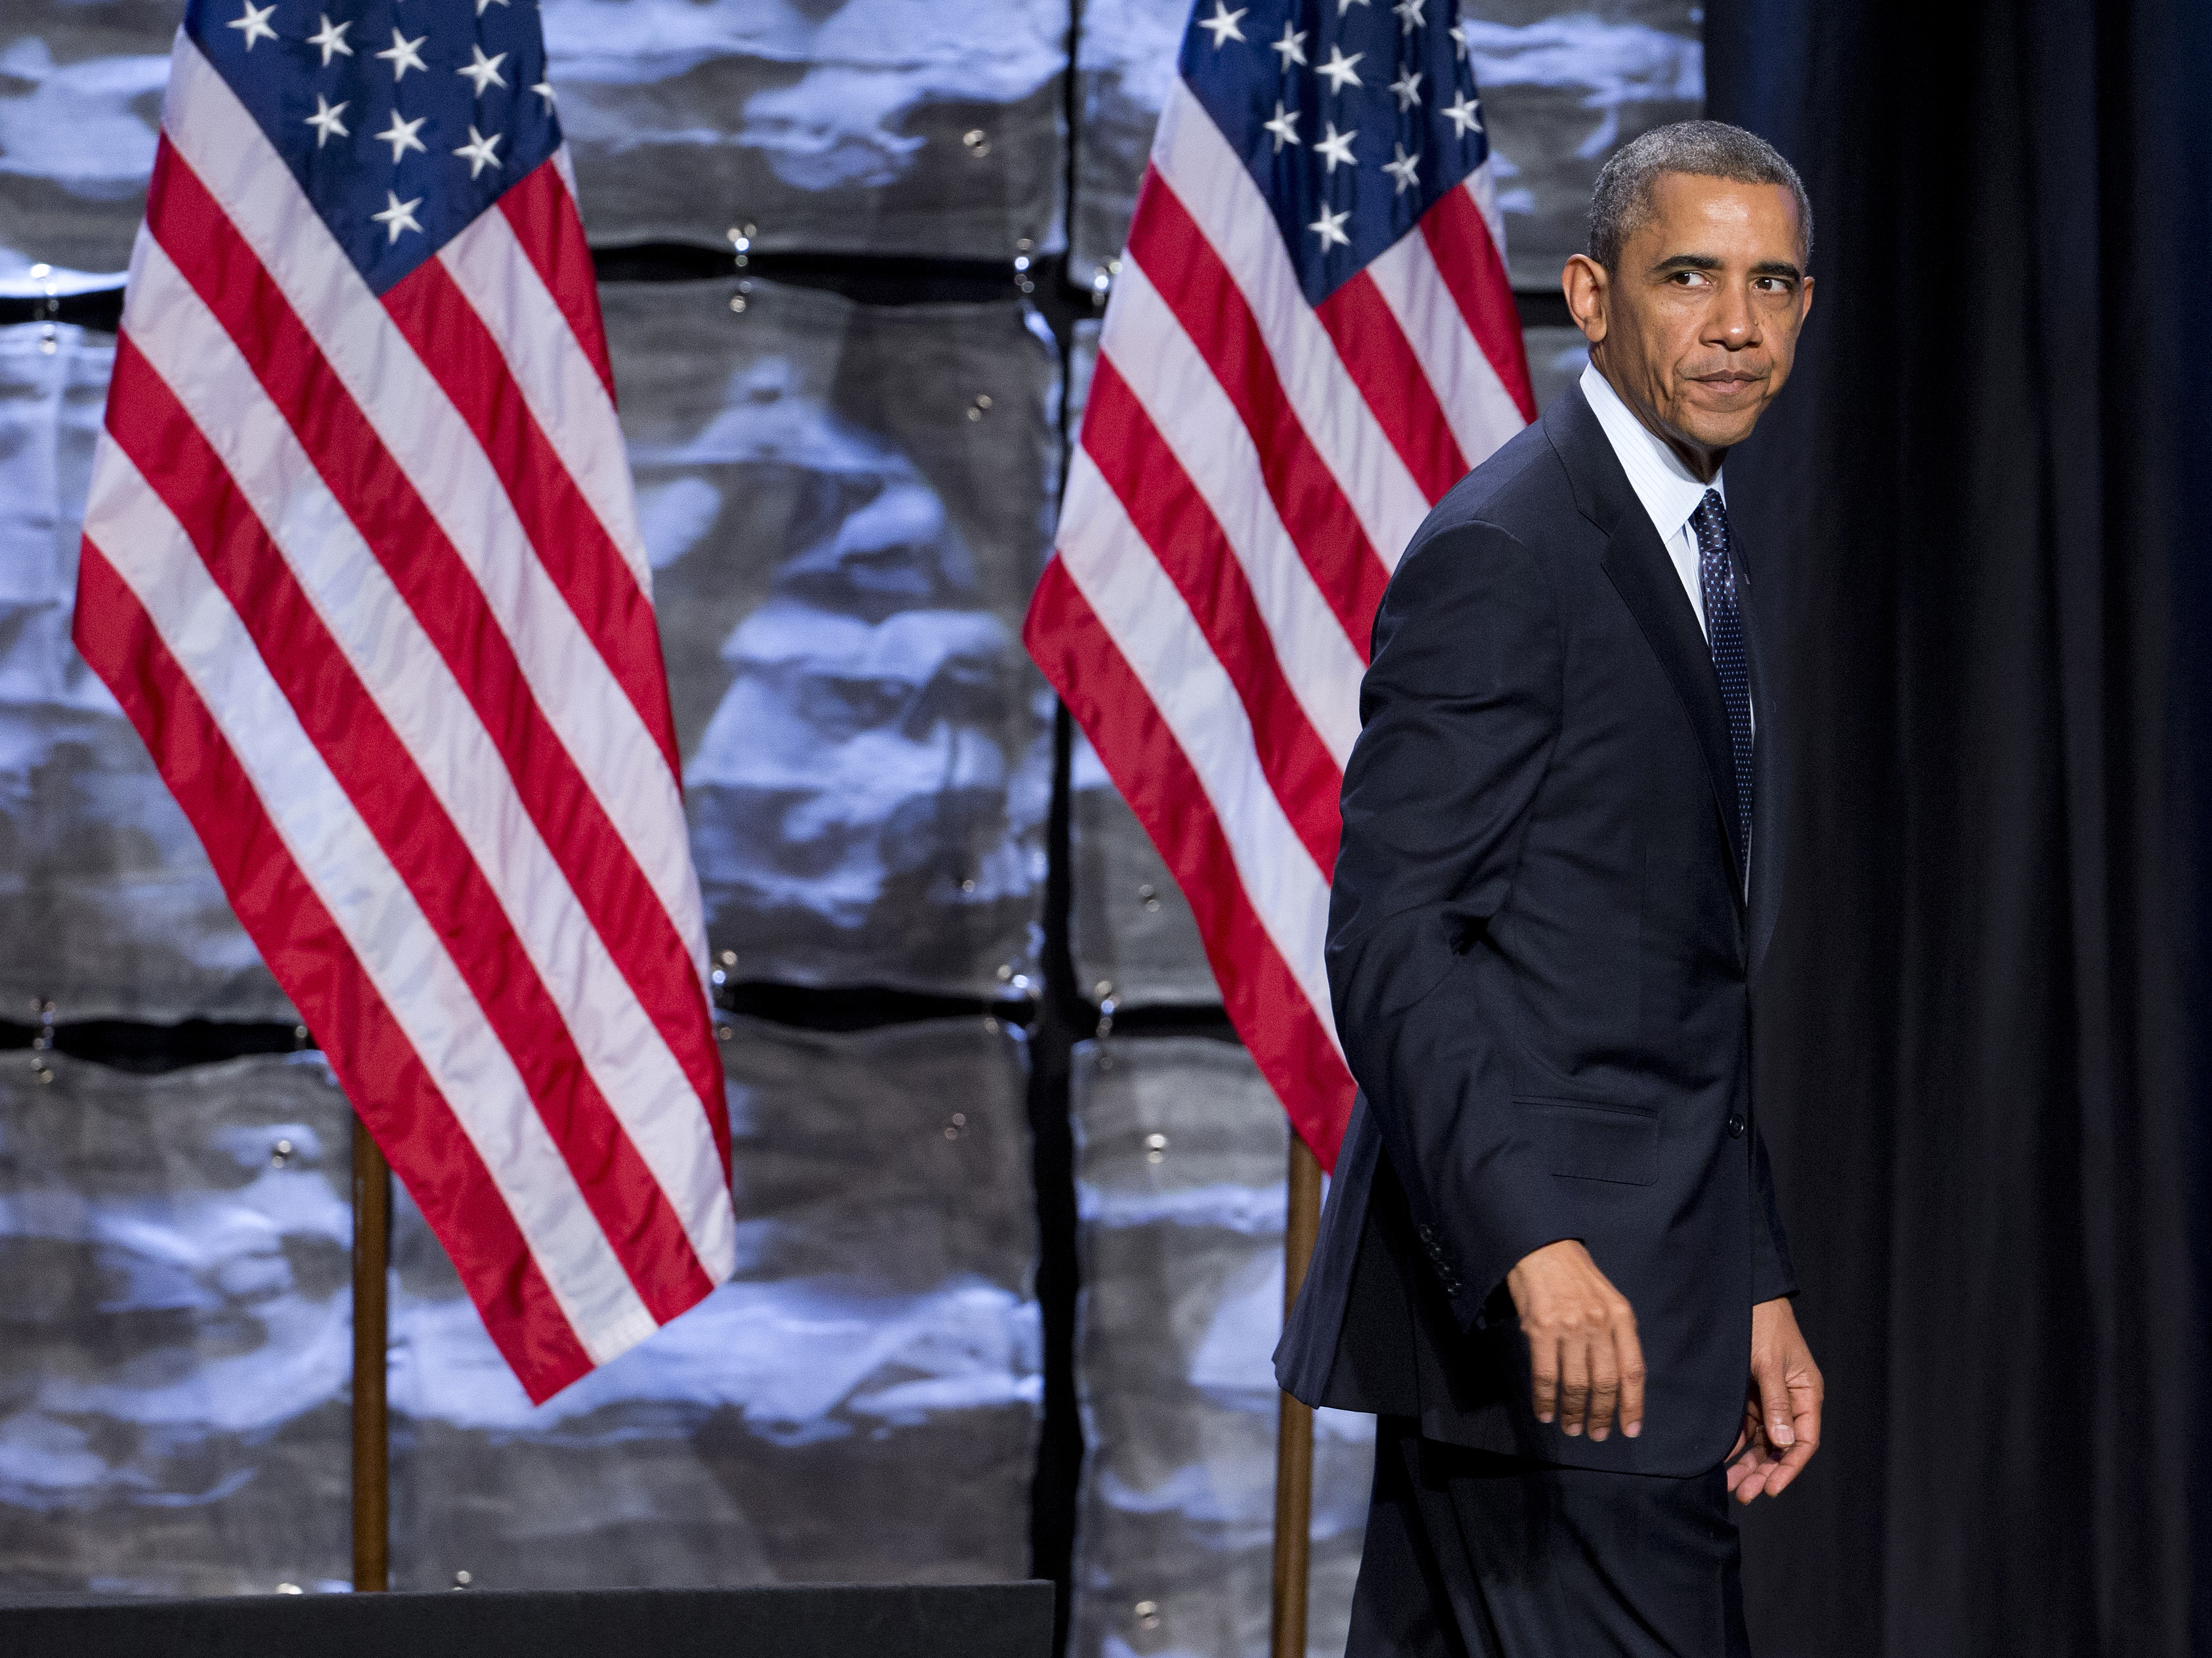 Obama Ratings Sink As Trustworthiness Comes Into Question